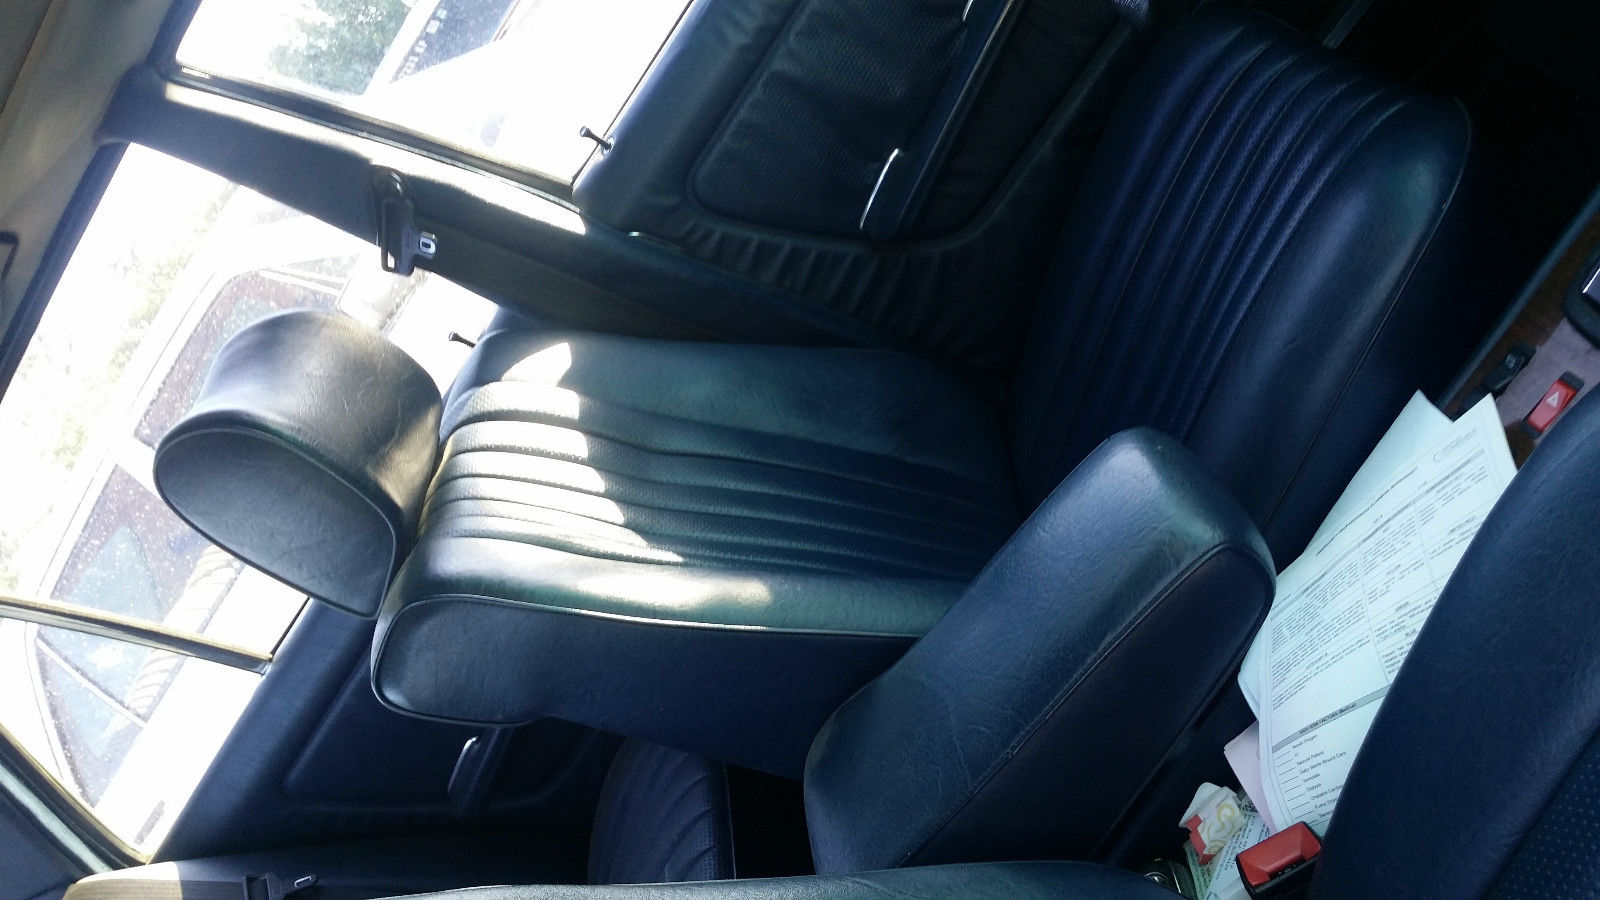 1985 mercedes 300d turbo white with blue interior loaded sunroof classic mercedes benz 300. Black Bedroom Furniture Sets. Home Design Ideas